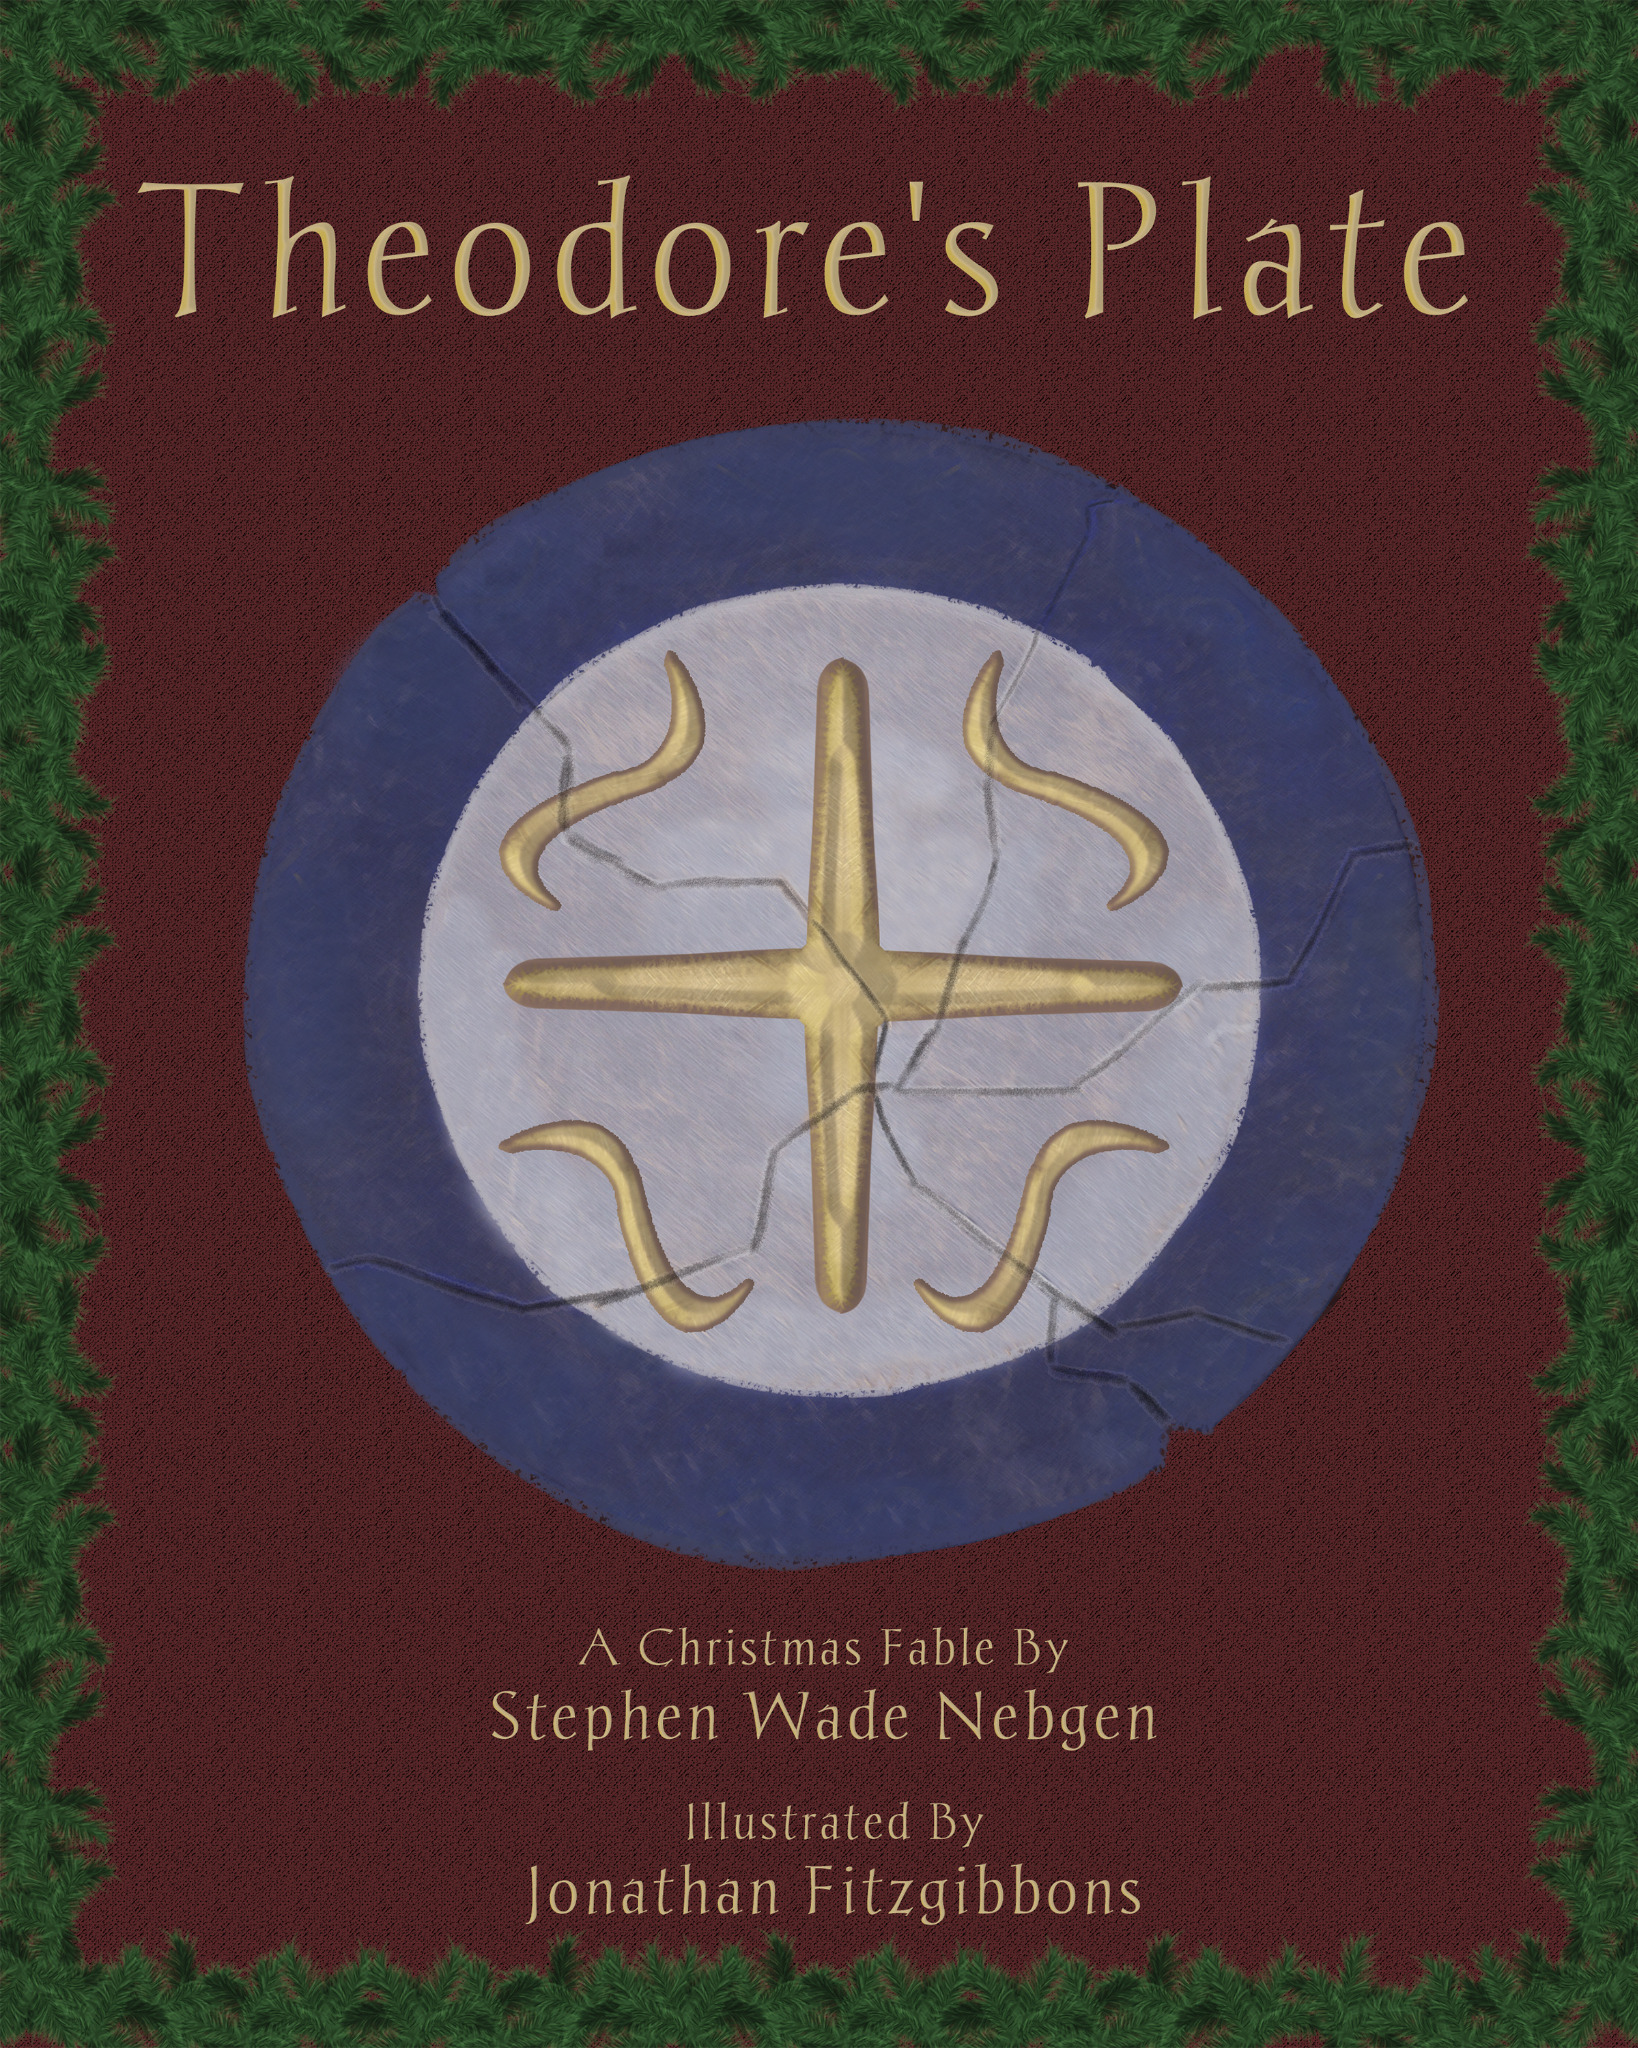 Theodore's Plate: A Christmas Fable